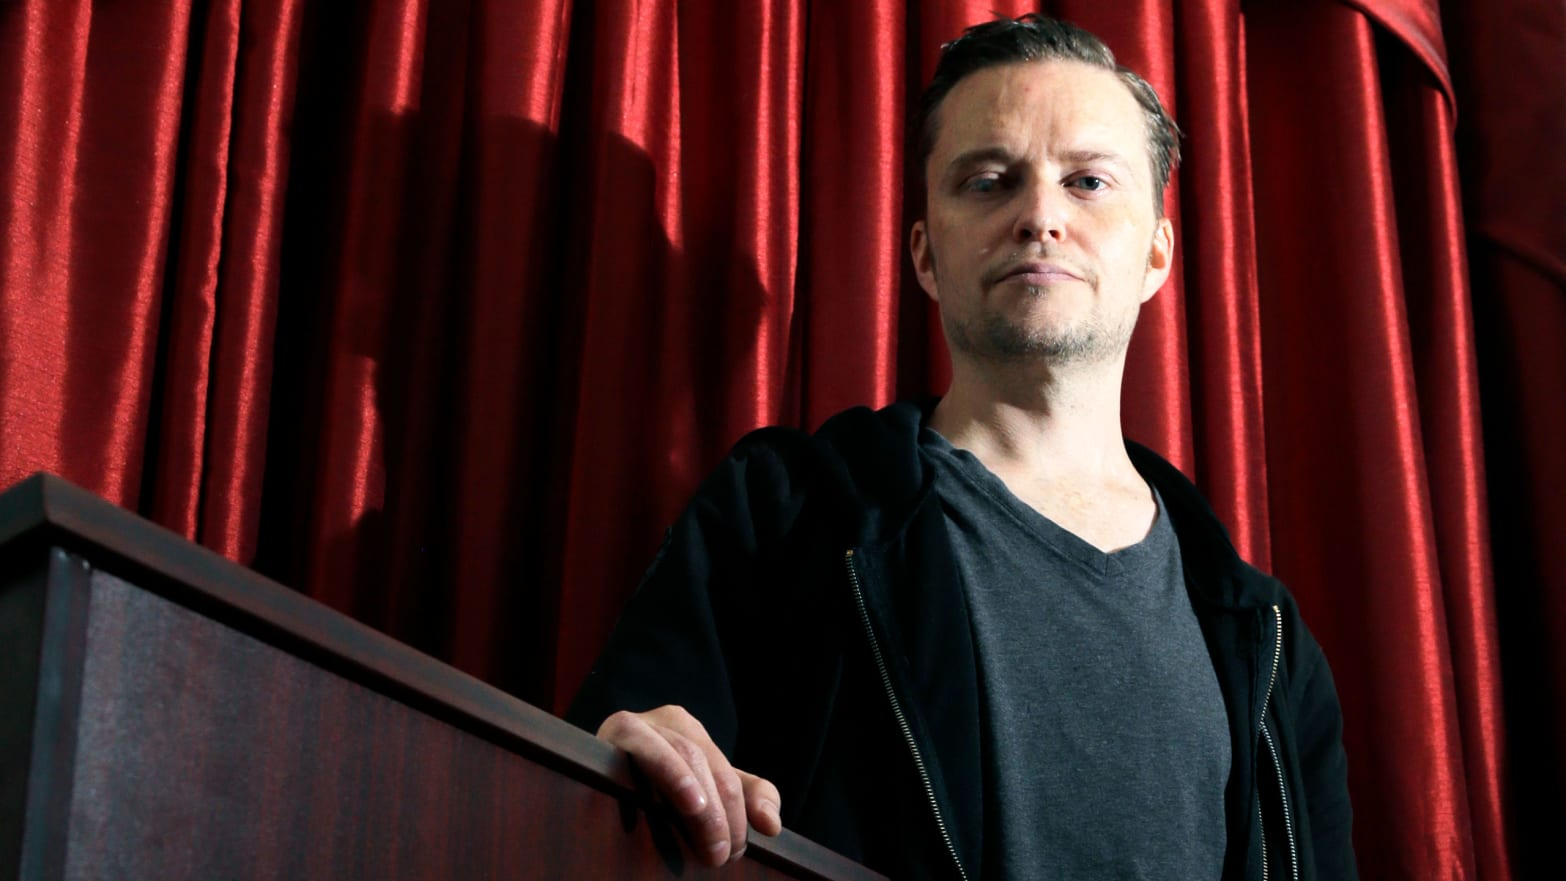 Satanic Temple Leader Lucien Greaves Warns the Women's March